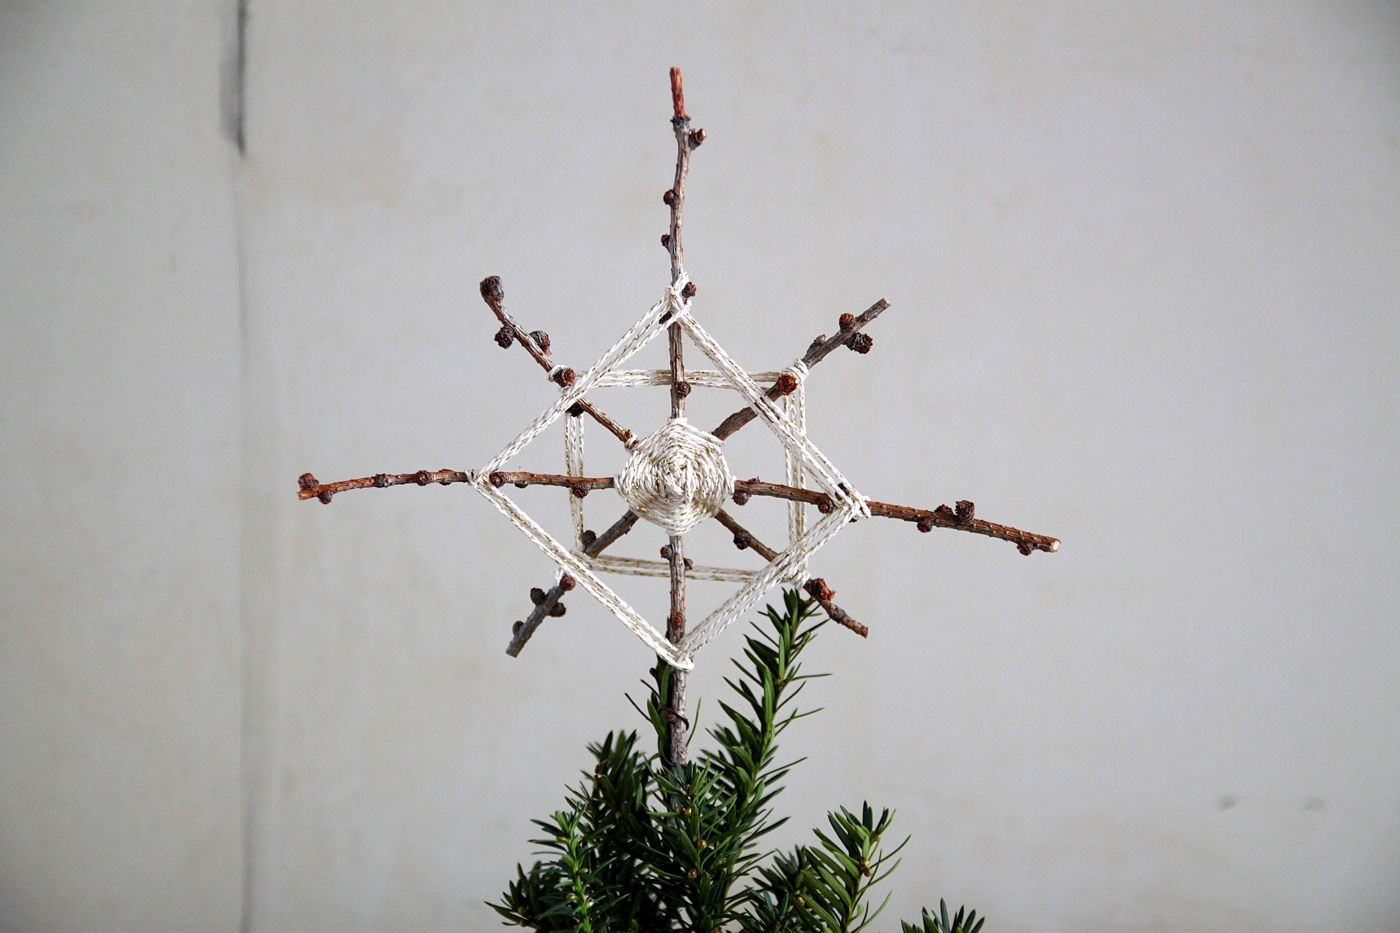 A star is born diy foraged christmas tree topper pinterest easy do you look every year for the perfect star to top the christmas tree resurrect an old camp skill and make one yourself with foraged boughs and our solutioingenieria Choice Image